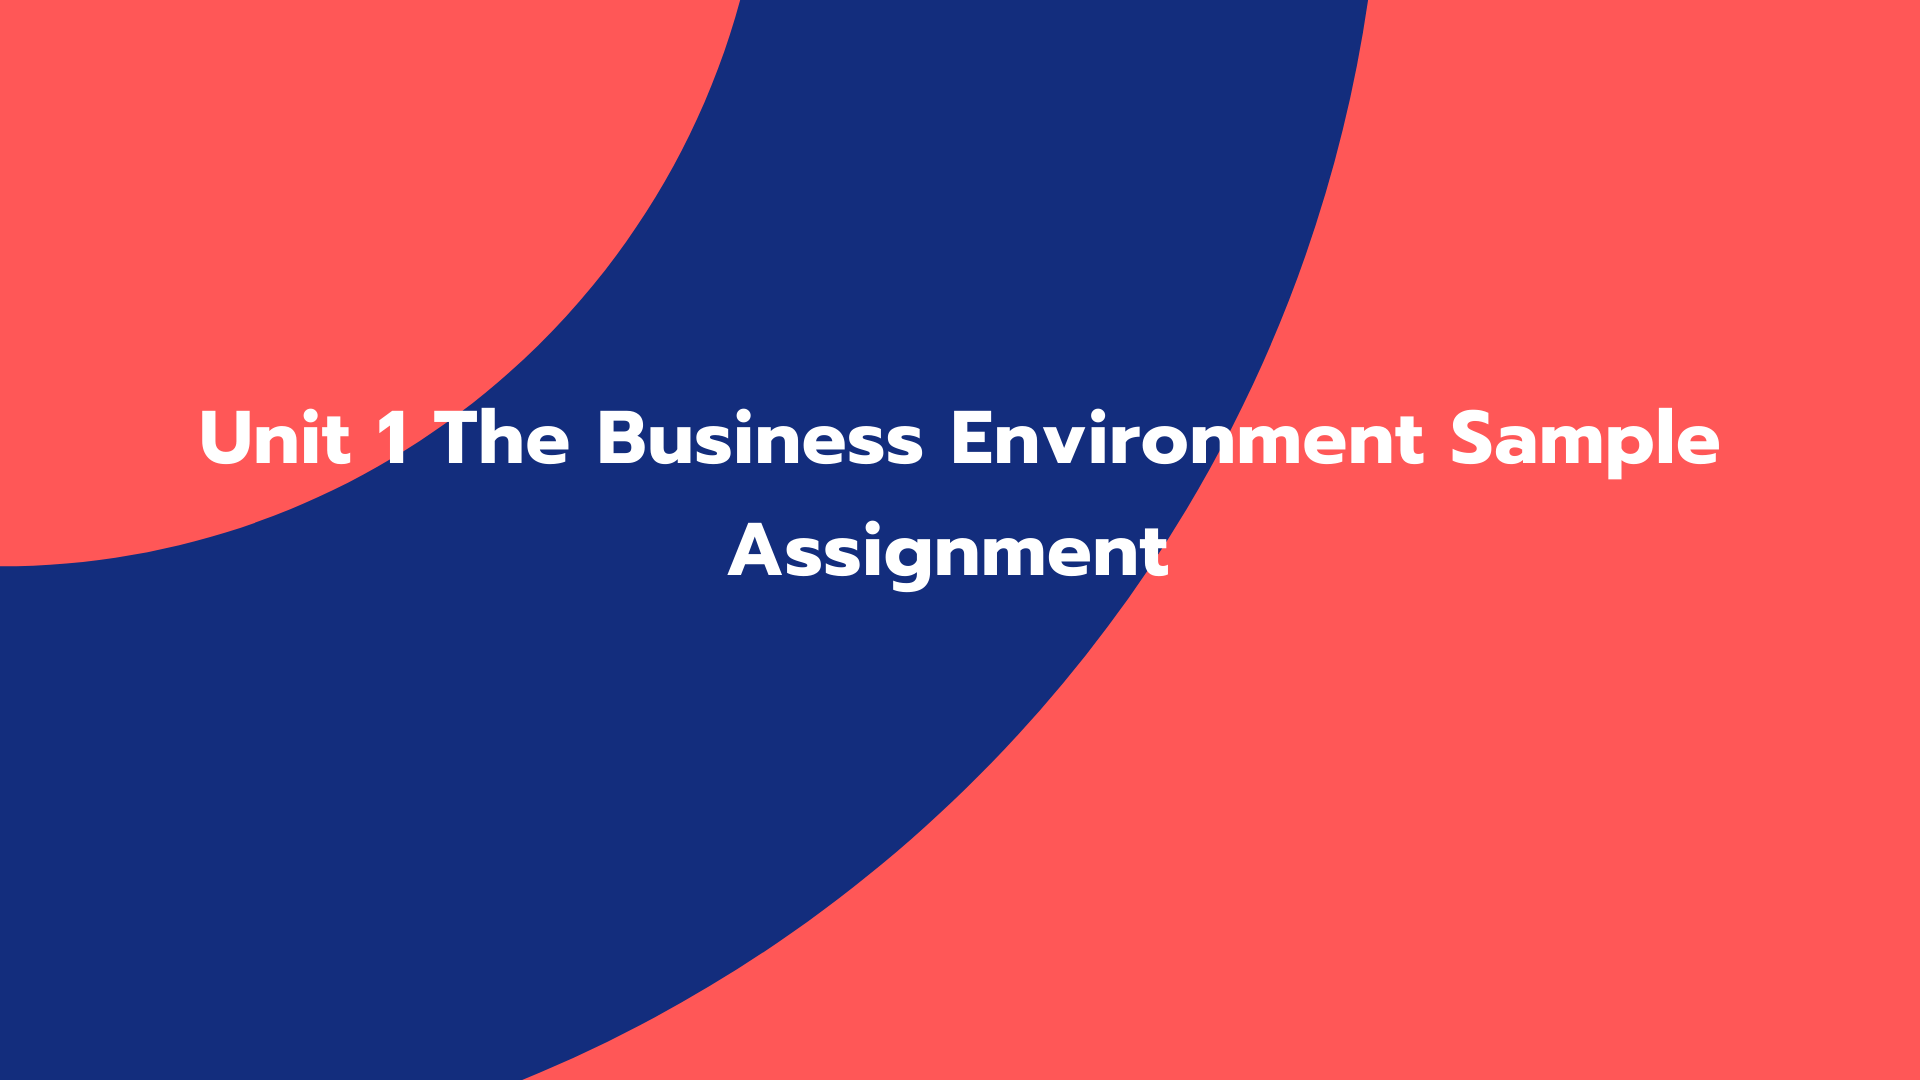 Unit 1 The Business Environment Sample Assignment